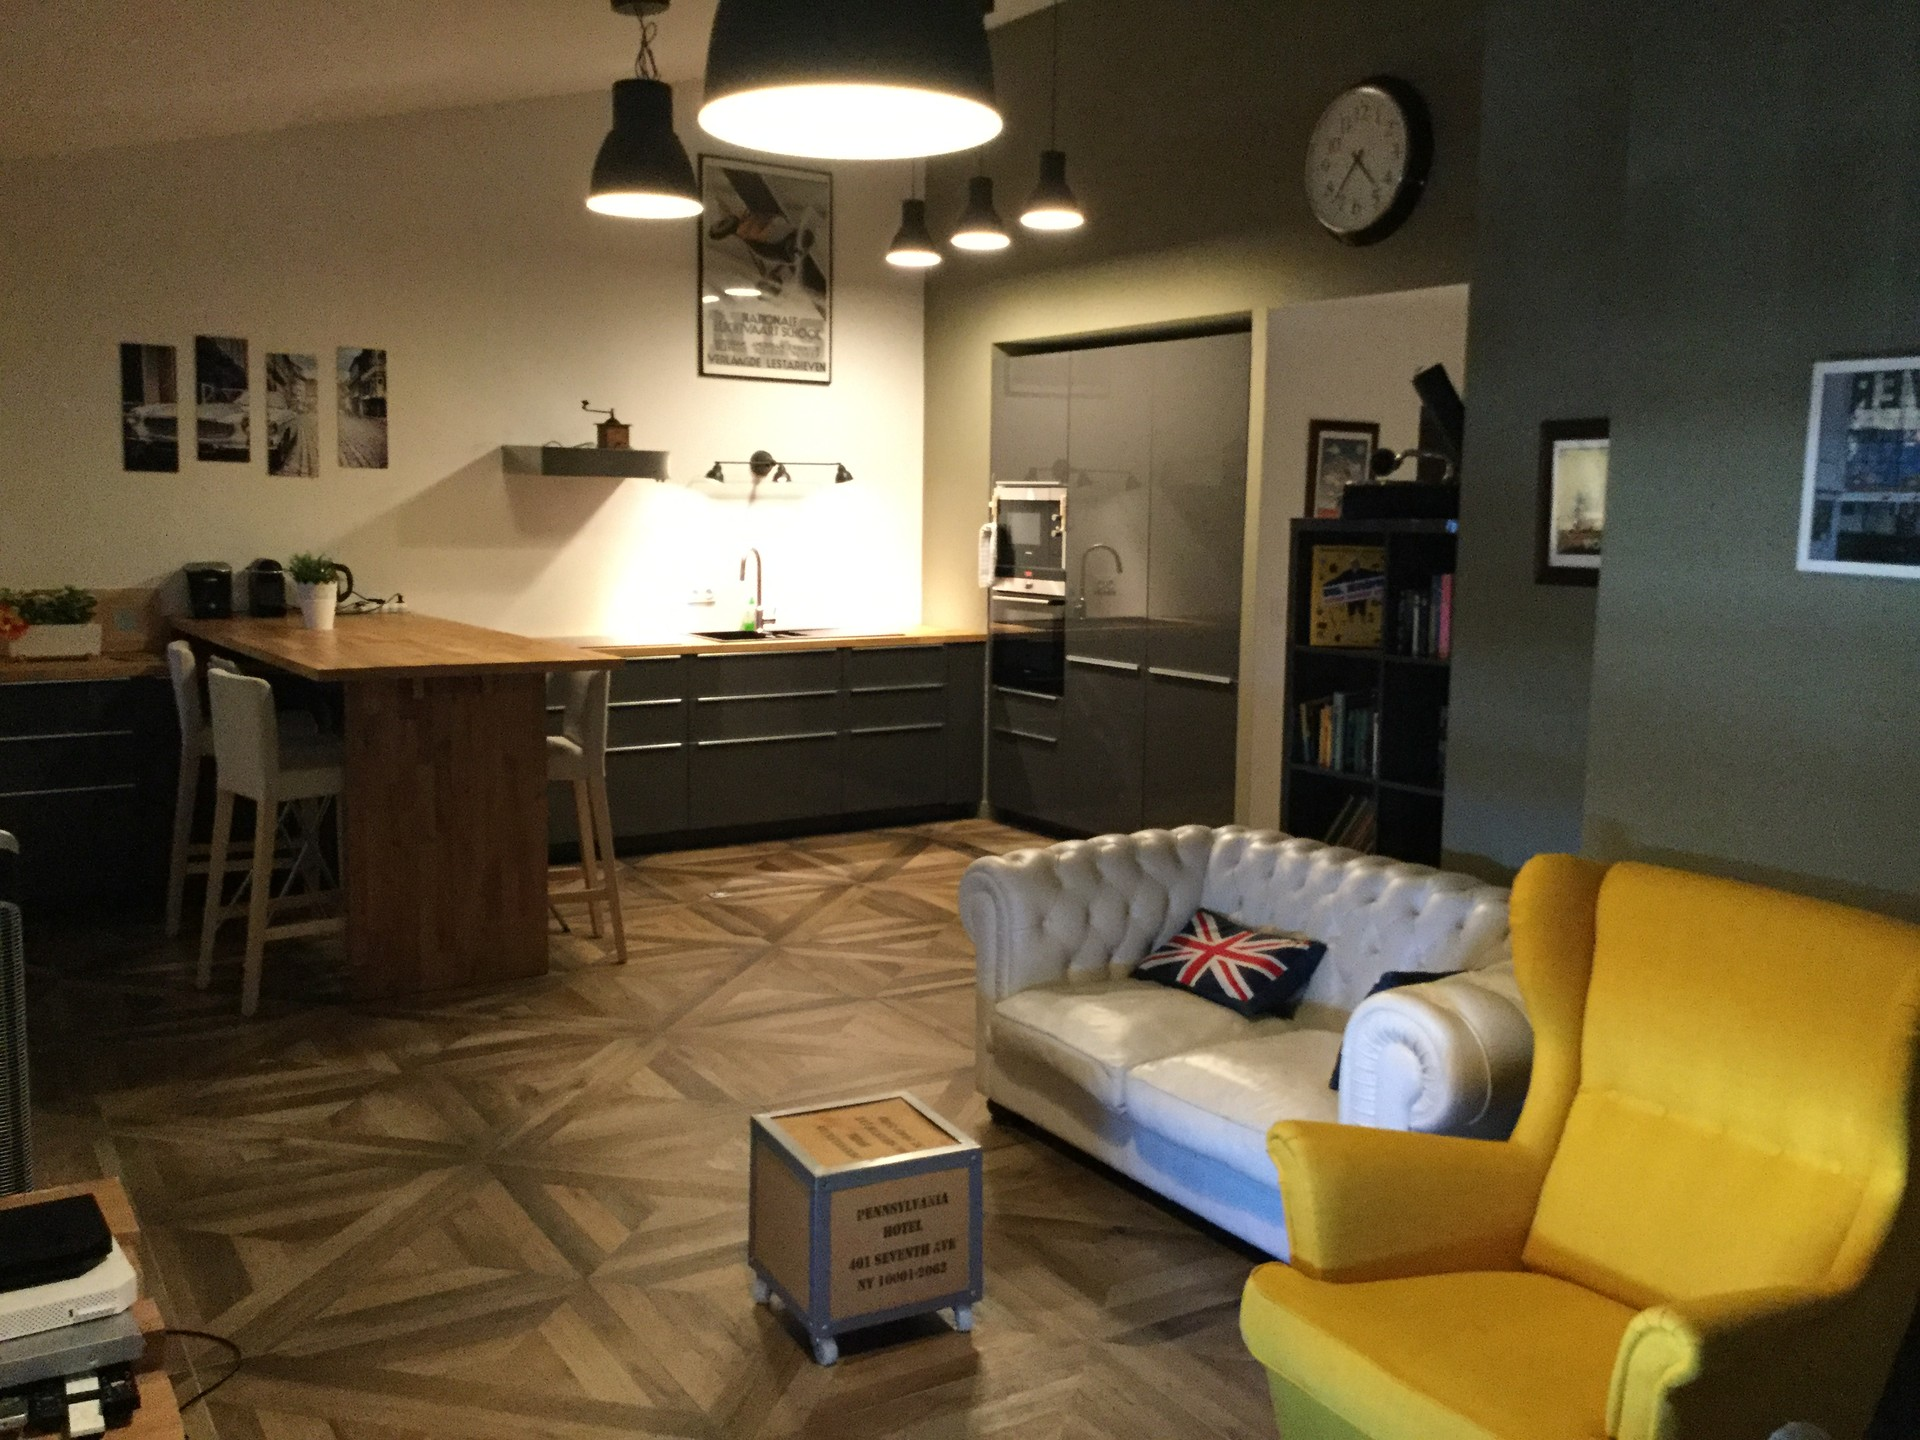 spacieux-appartement-centre-de-montpellier-adc5ea3ad3c2b92f58e9eea73a3558aa